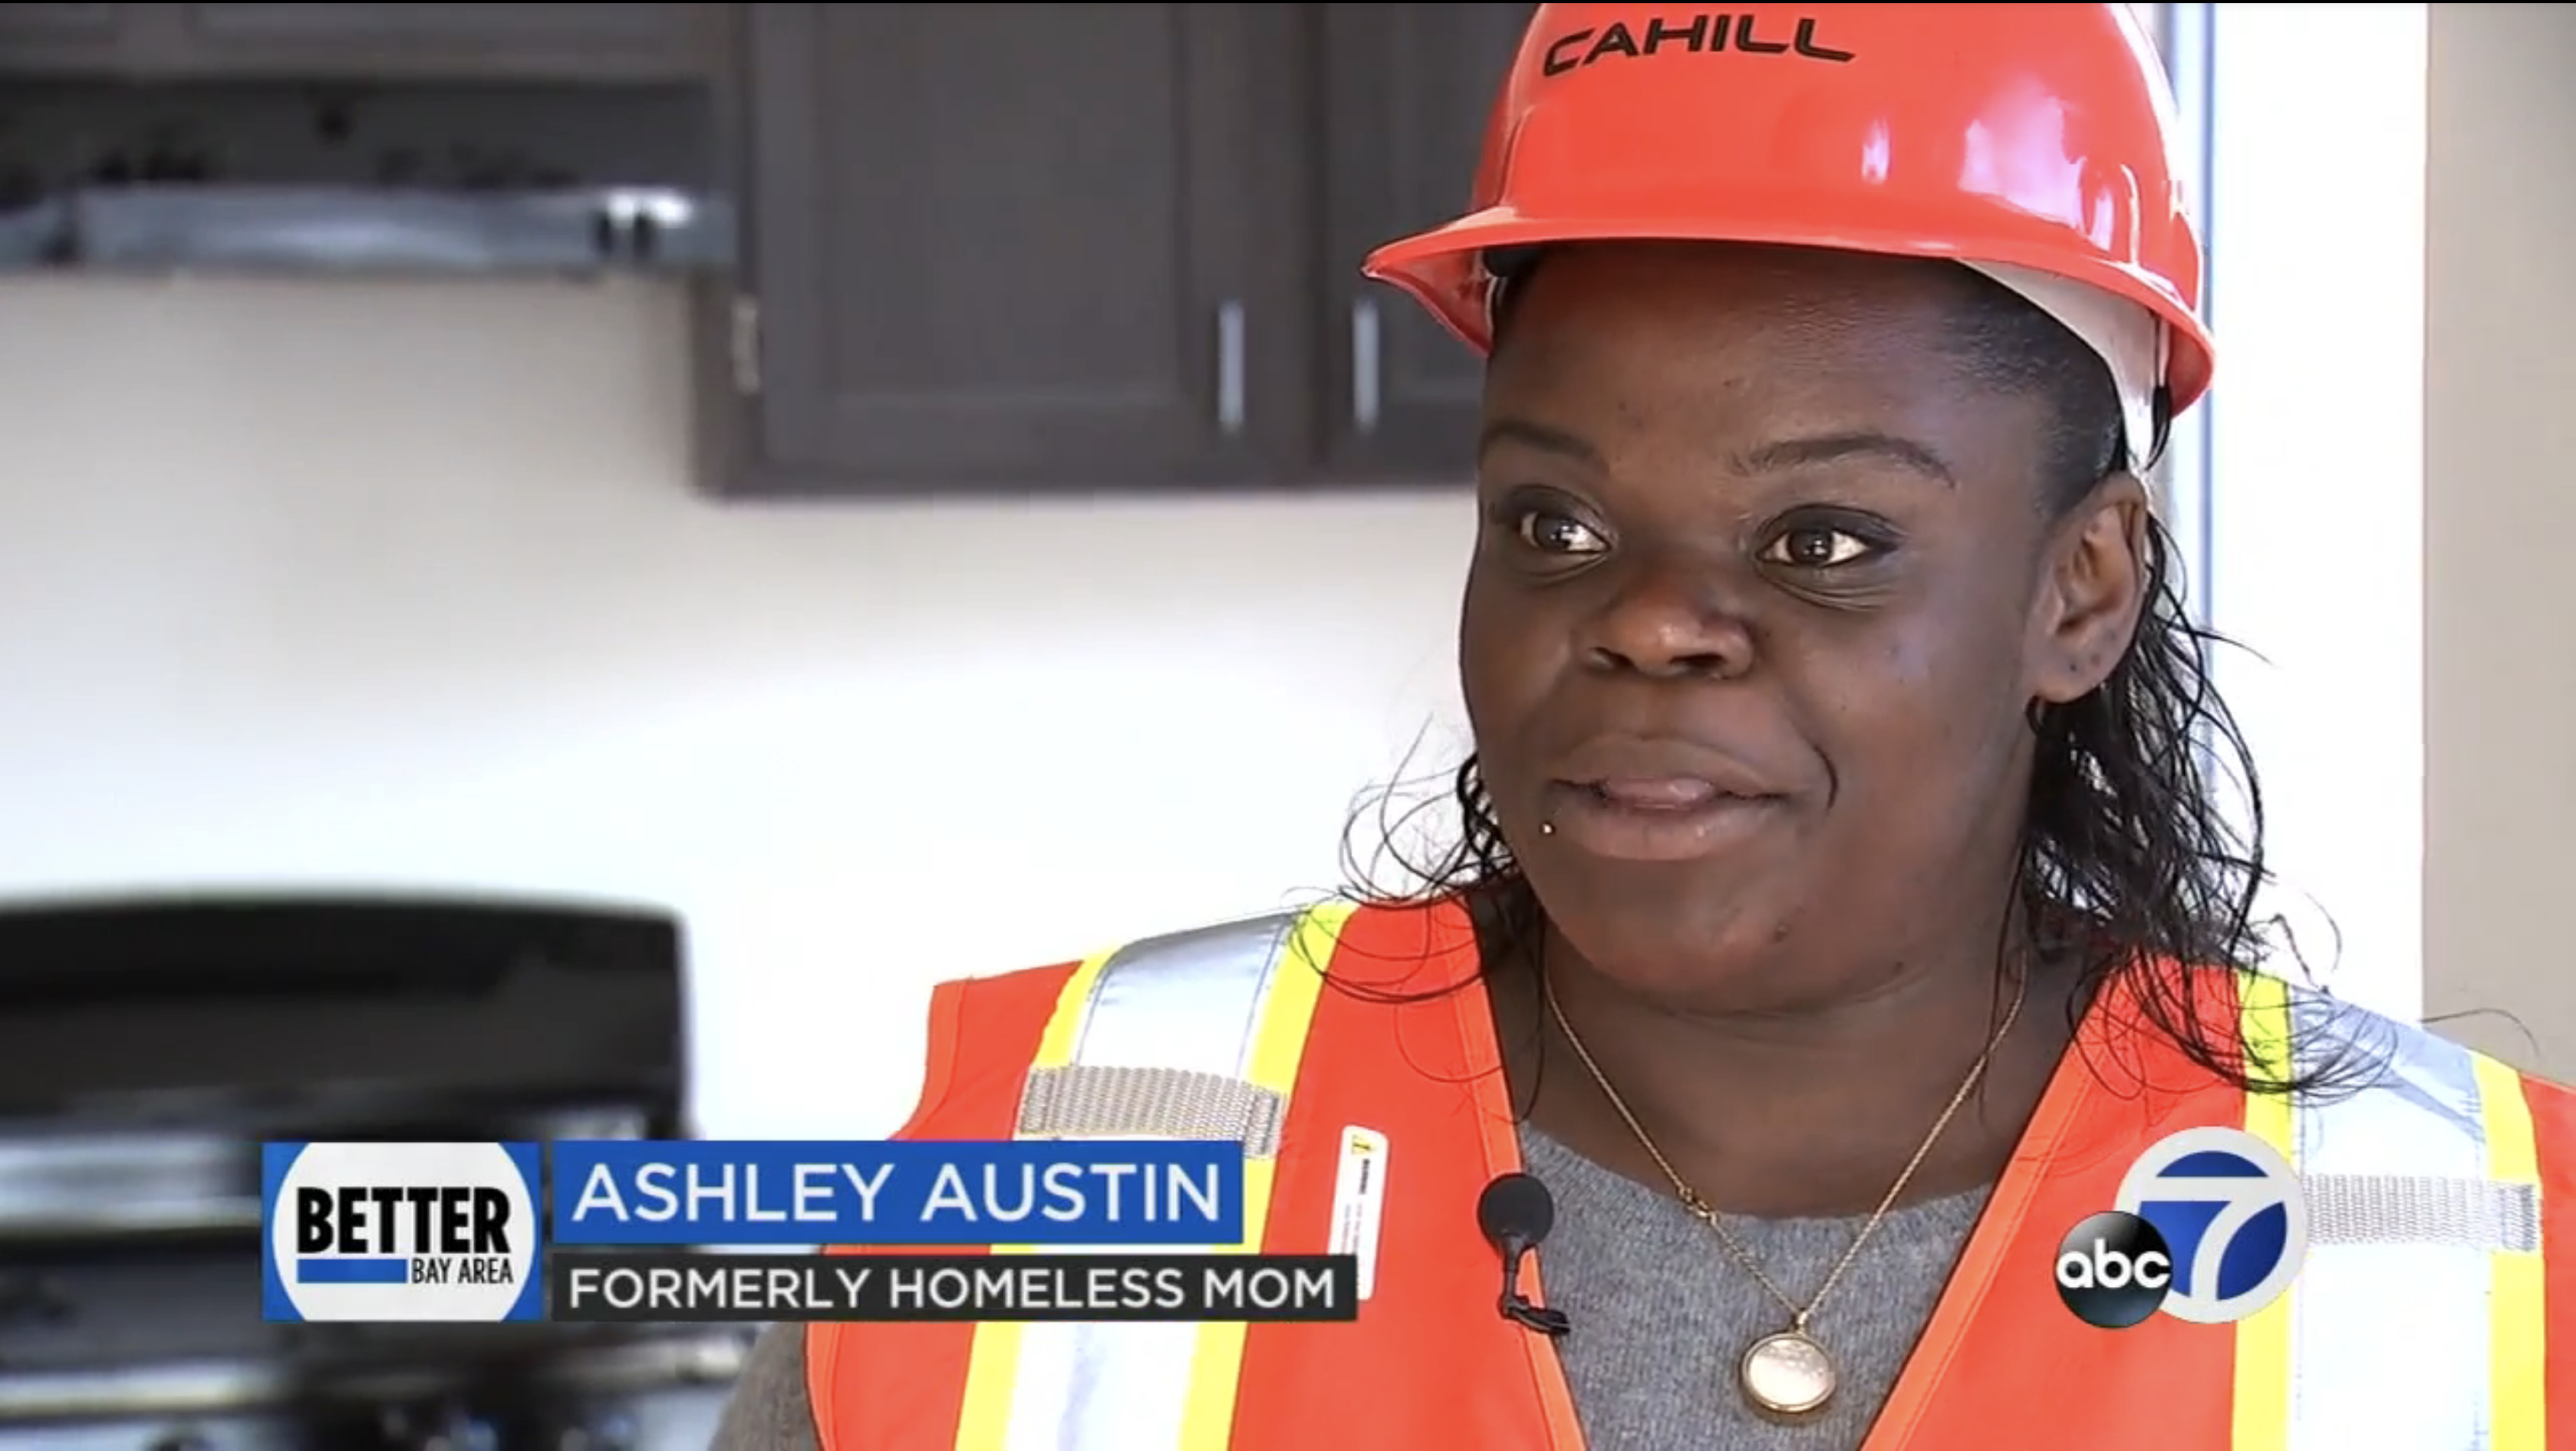 A brand new property in San Francisco is giving permanent supportive housing to homeless women and children.